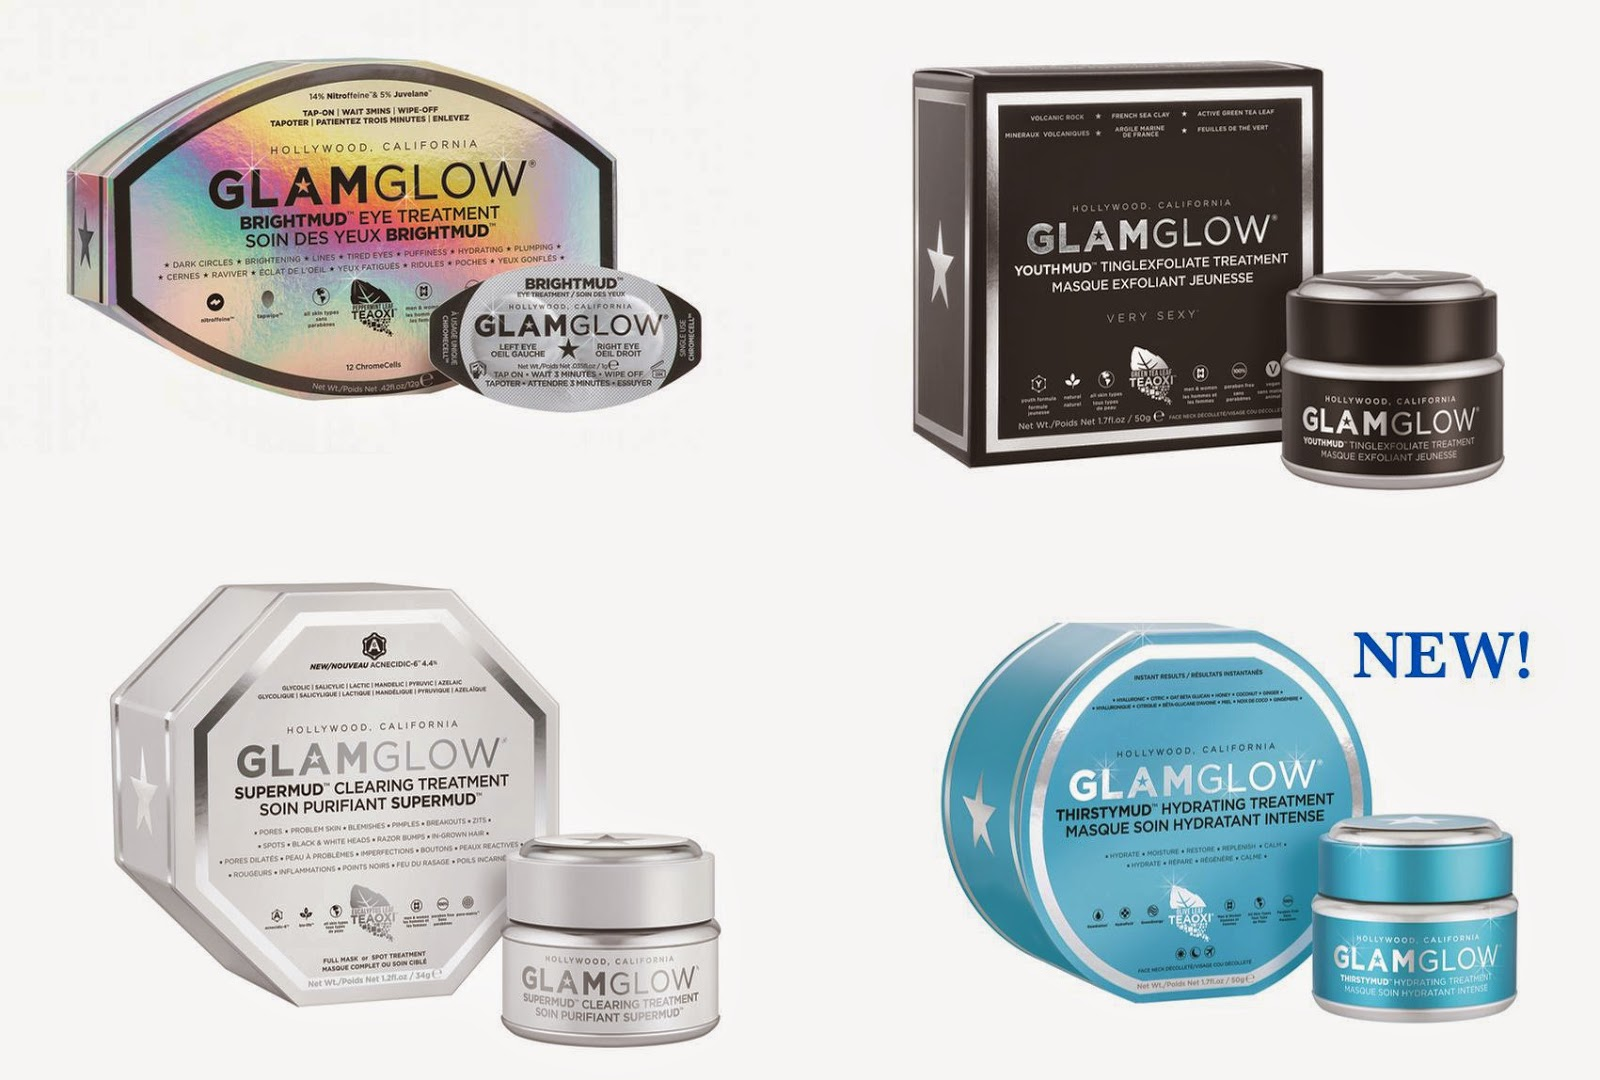 glamglow-beauty-products-mud-masks-face-and-eye